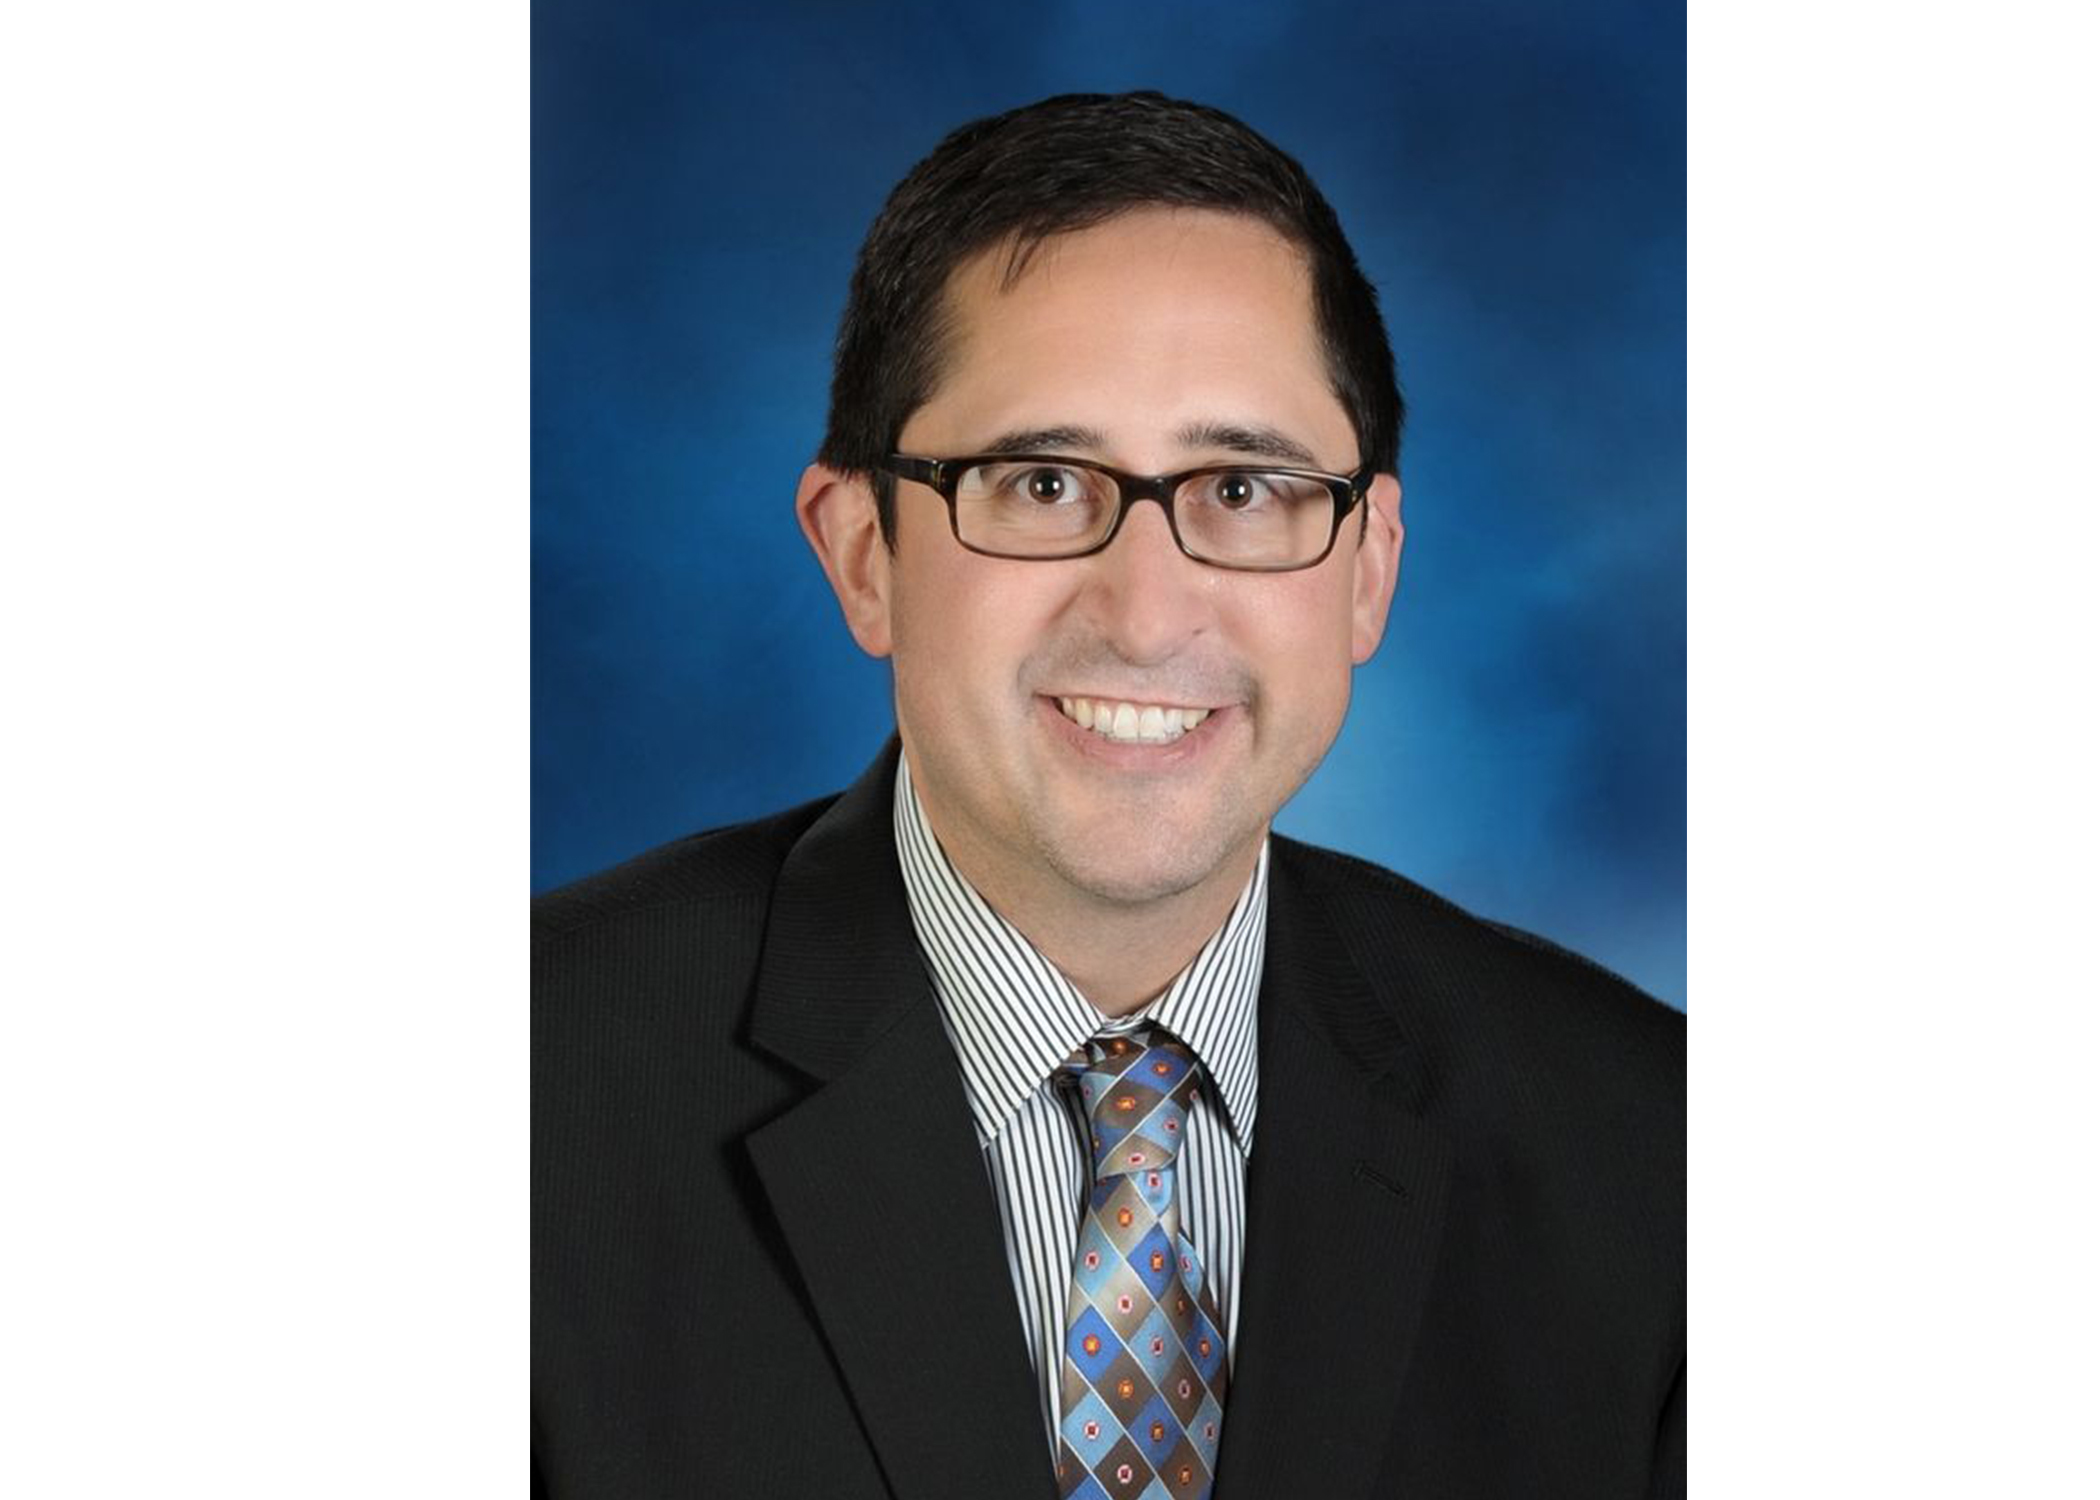 Sam Yingling, Illinois House 62nd Democratic nominee and incumbent, 2020 election